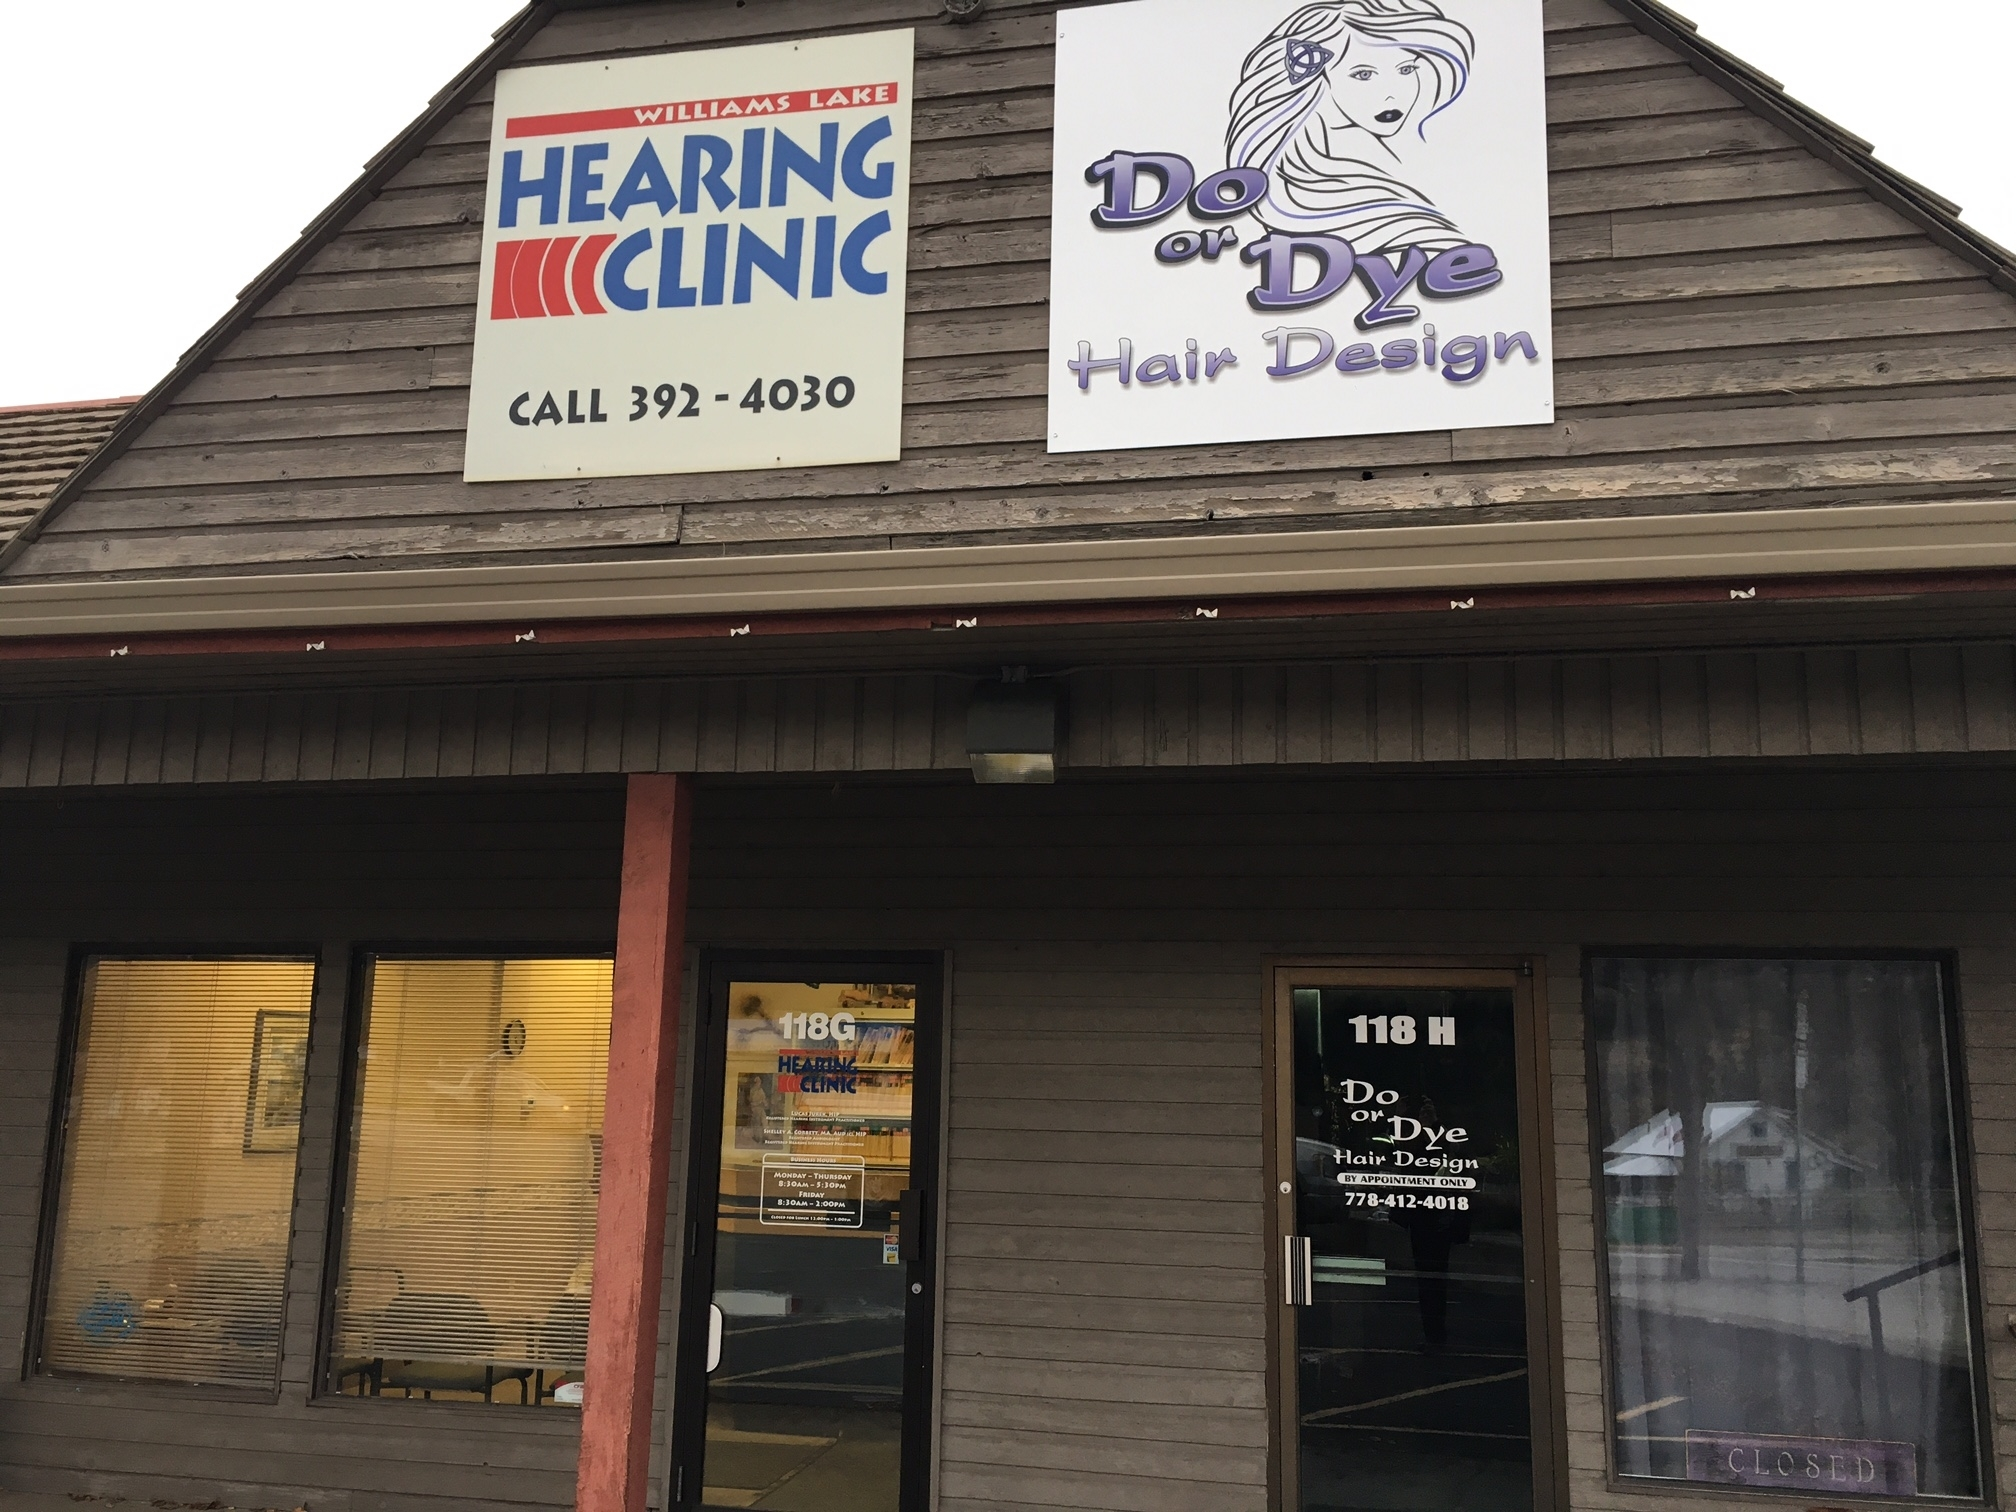 Williams Lake Hearing Clinic in Williams Lake: front entrance